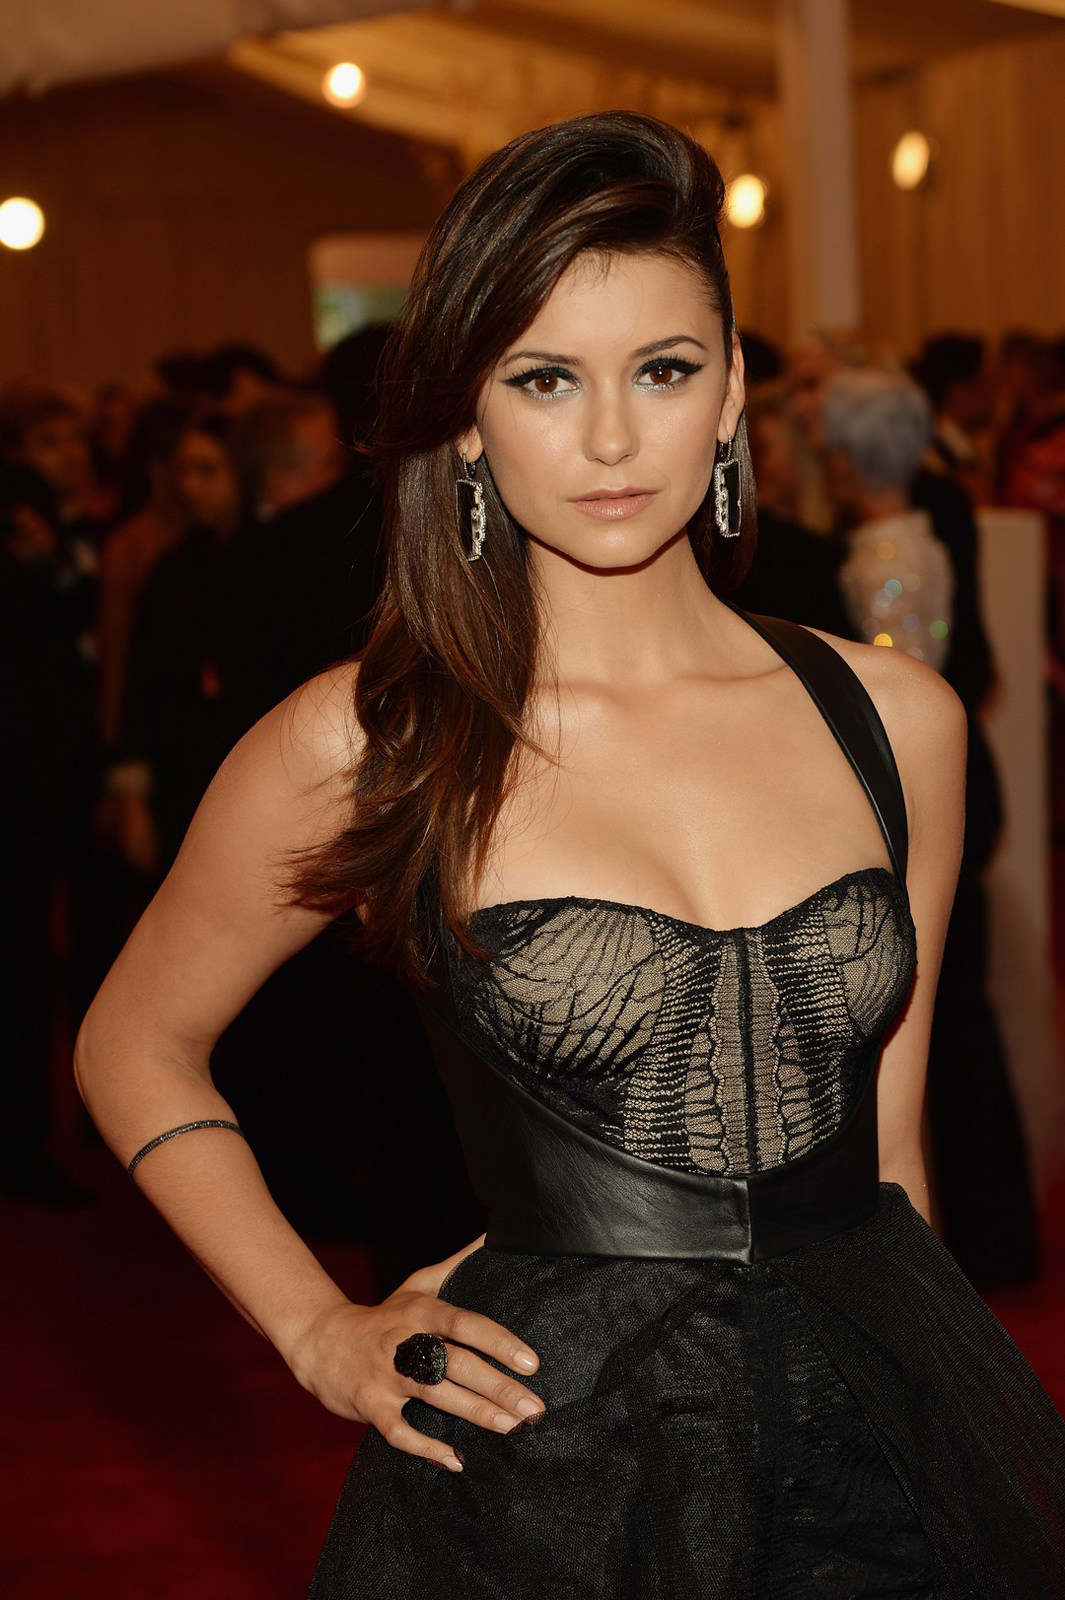 Nina Dobrev Photo Gallery